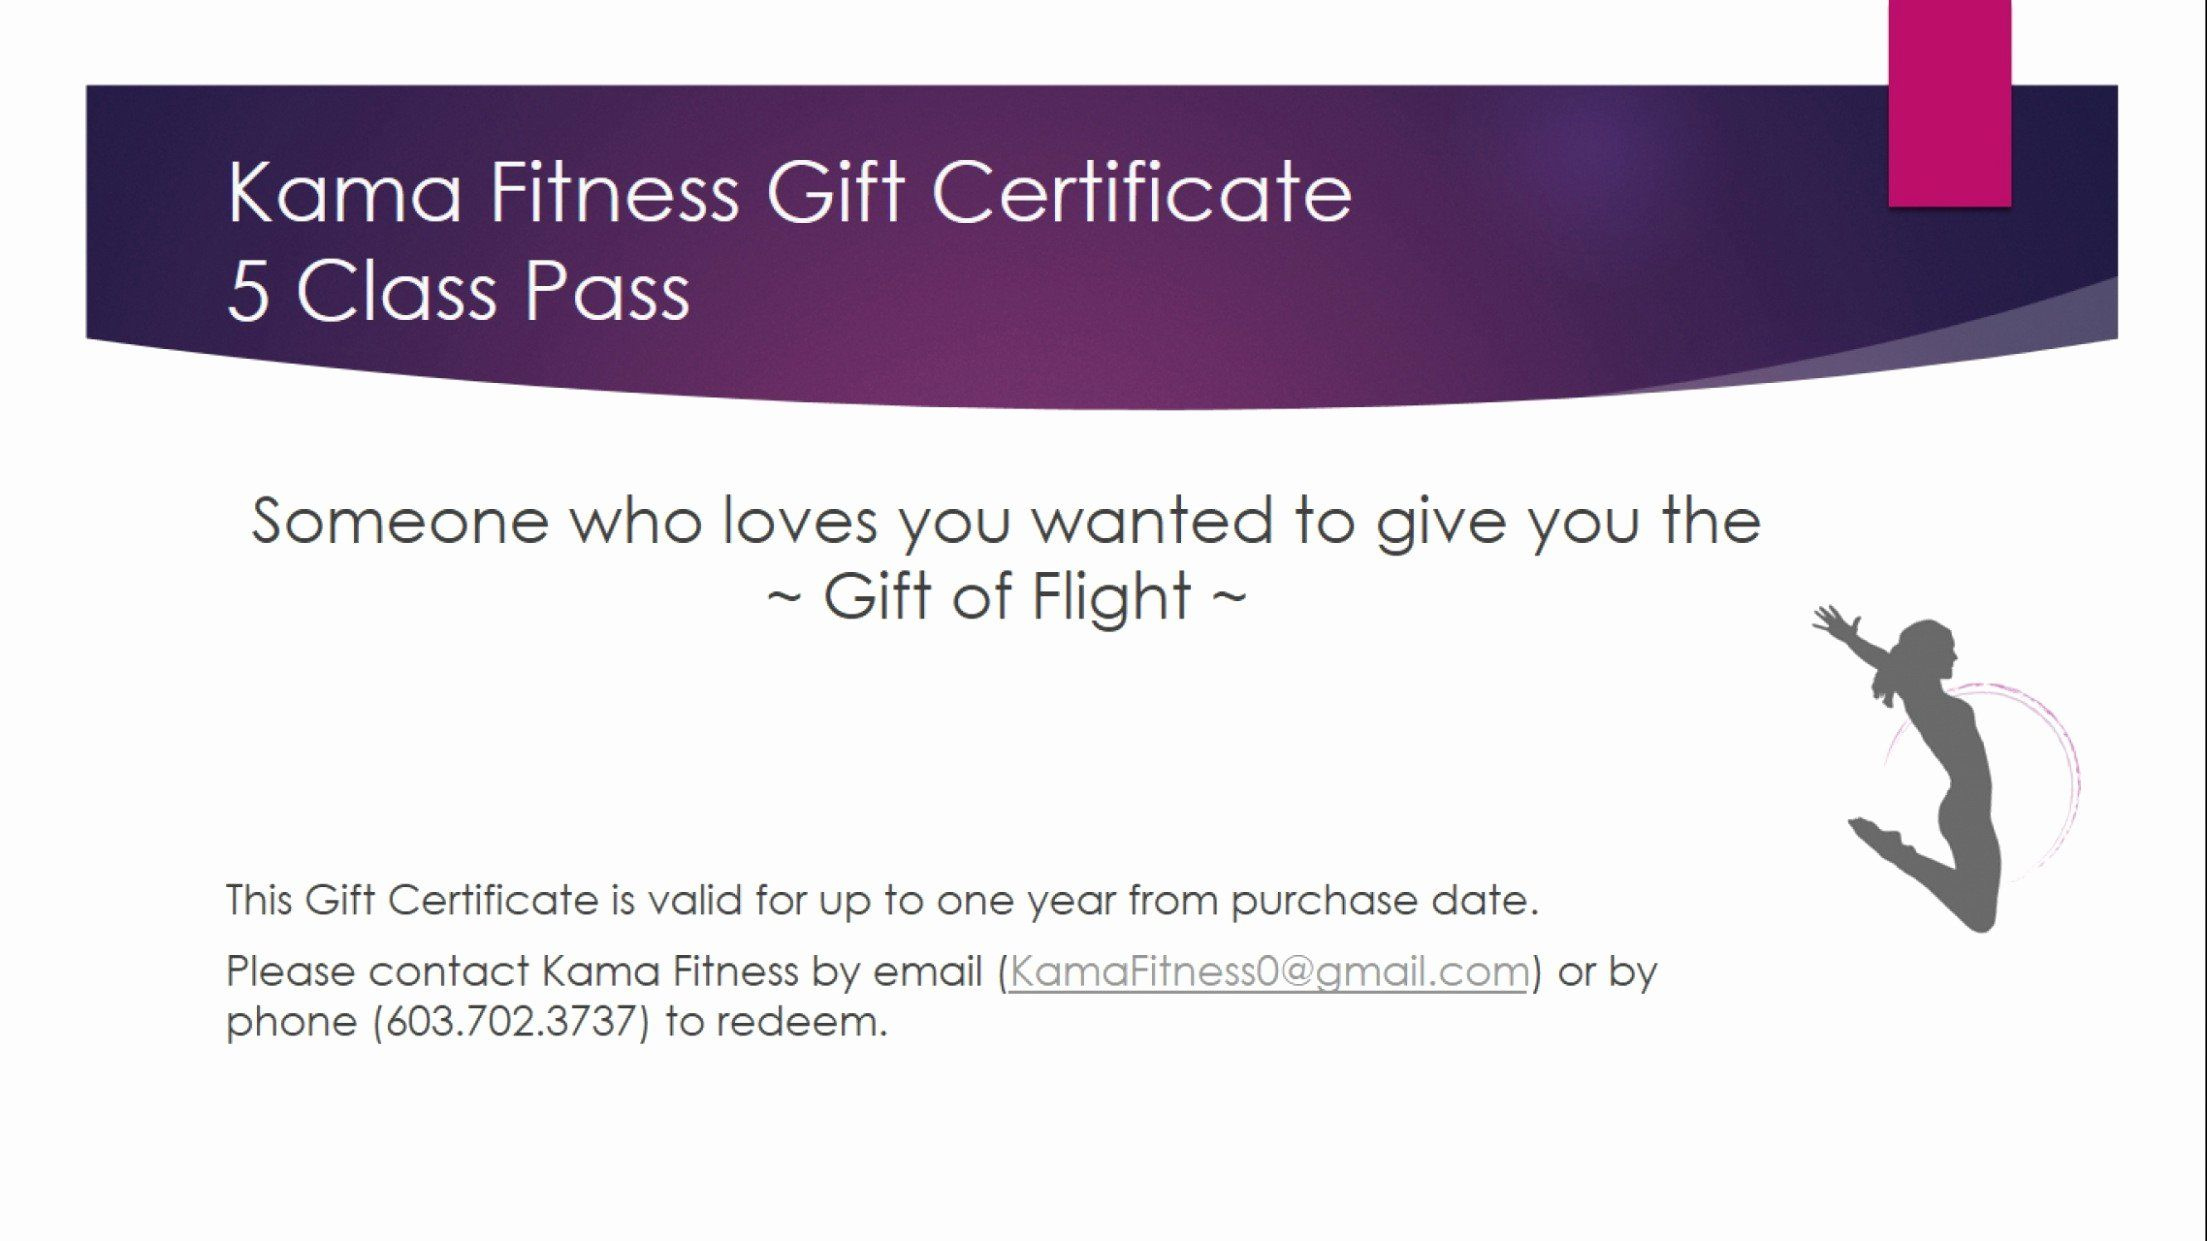 Make Up Gift Certificate Template Fresh Gift Certificate inside Fitness Gift Certificate Template